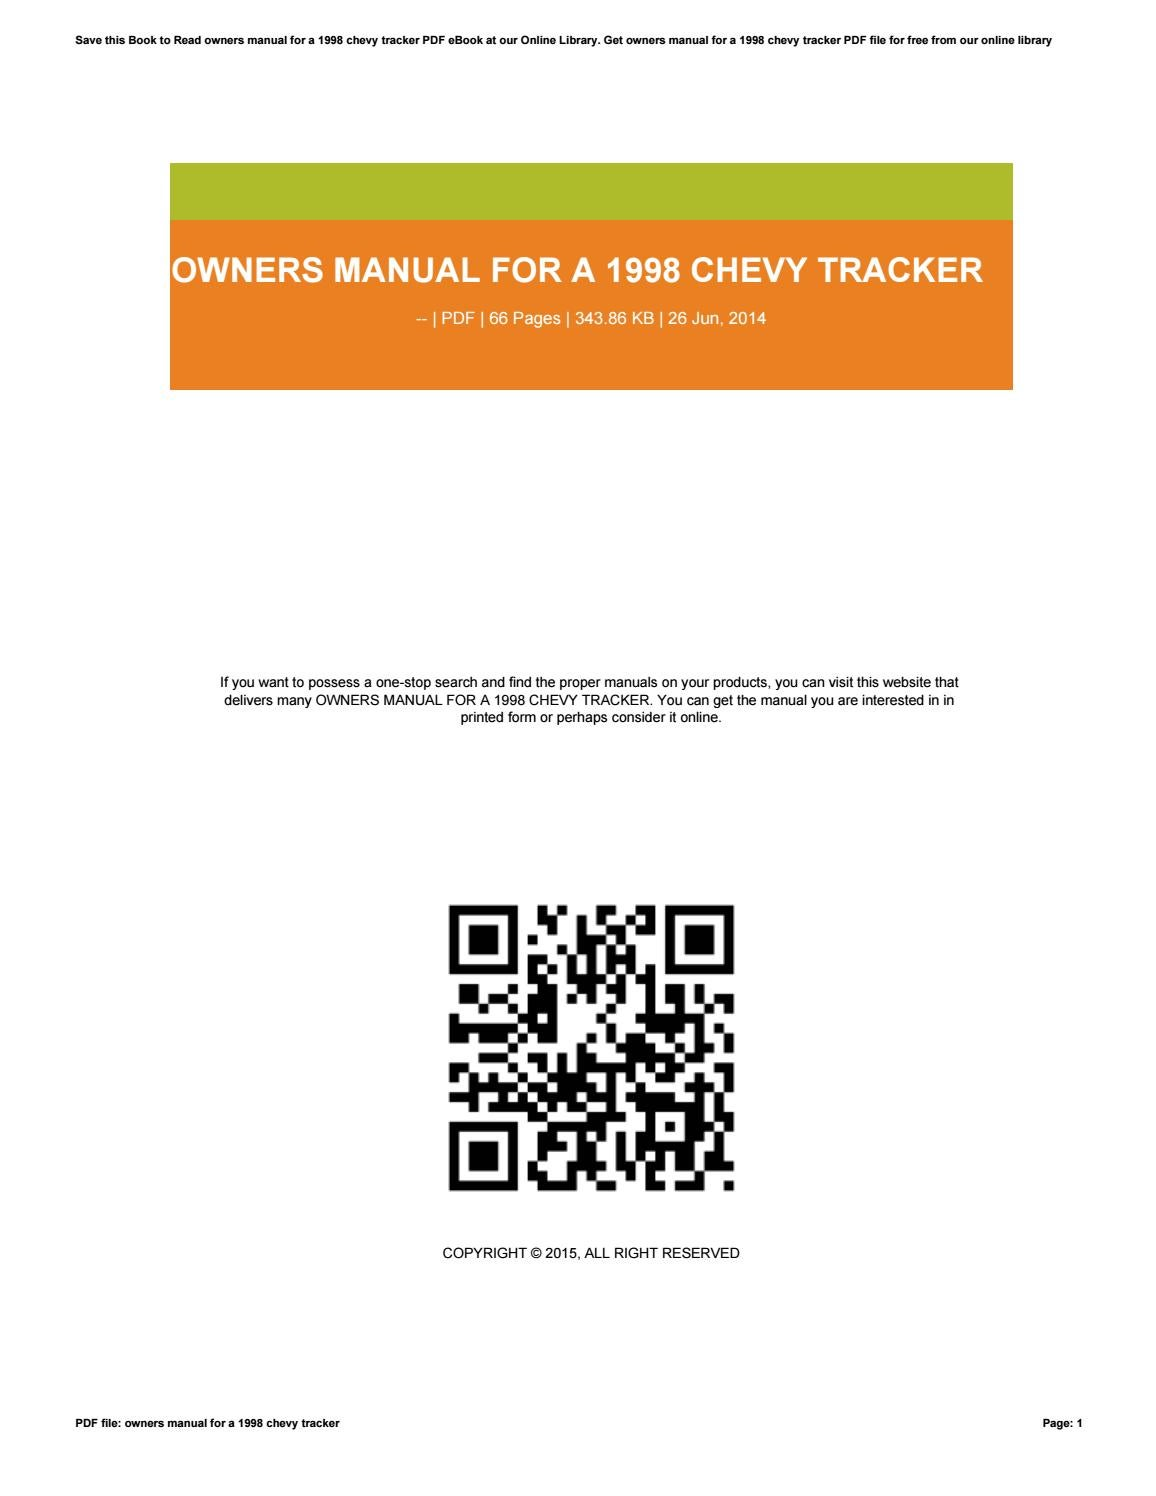 owners manual for a 1998 chevy tracker by pedroallen1968 issuu rh issuu com 2007 Chevy Tracker 2006 Chevy Tracker